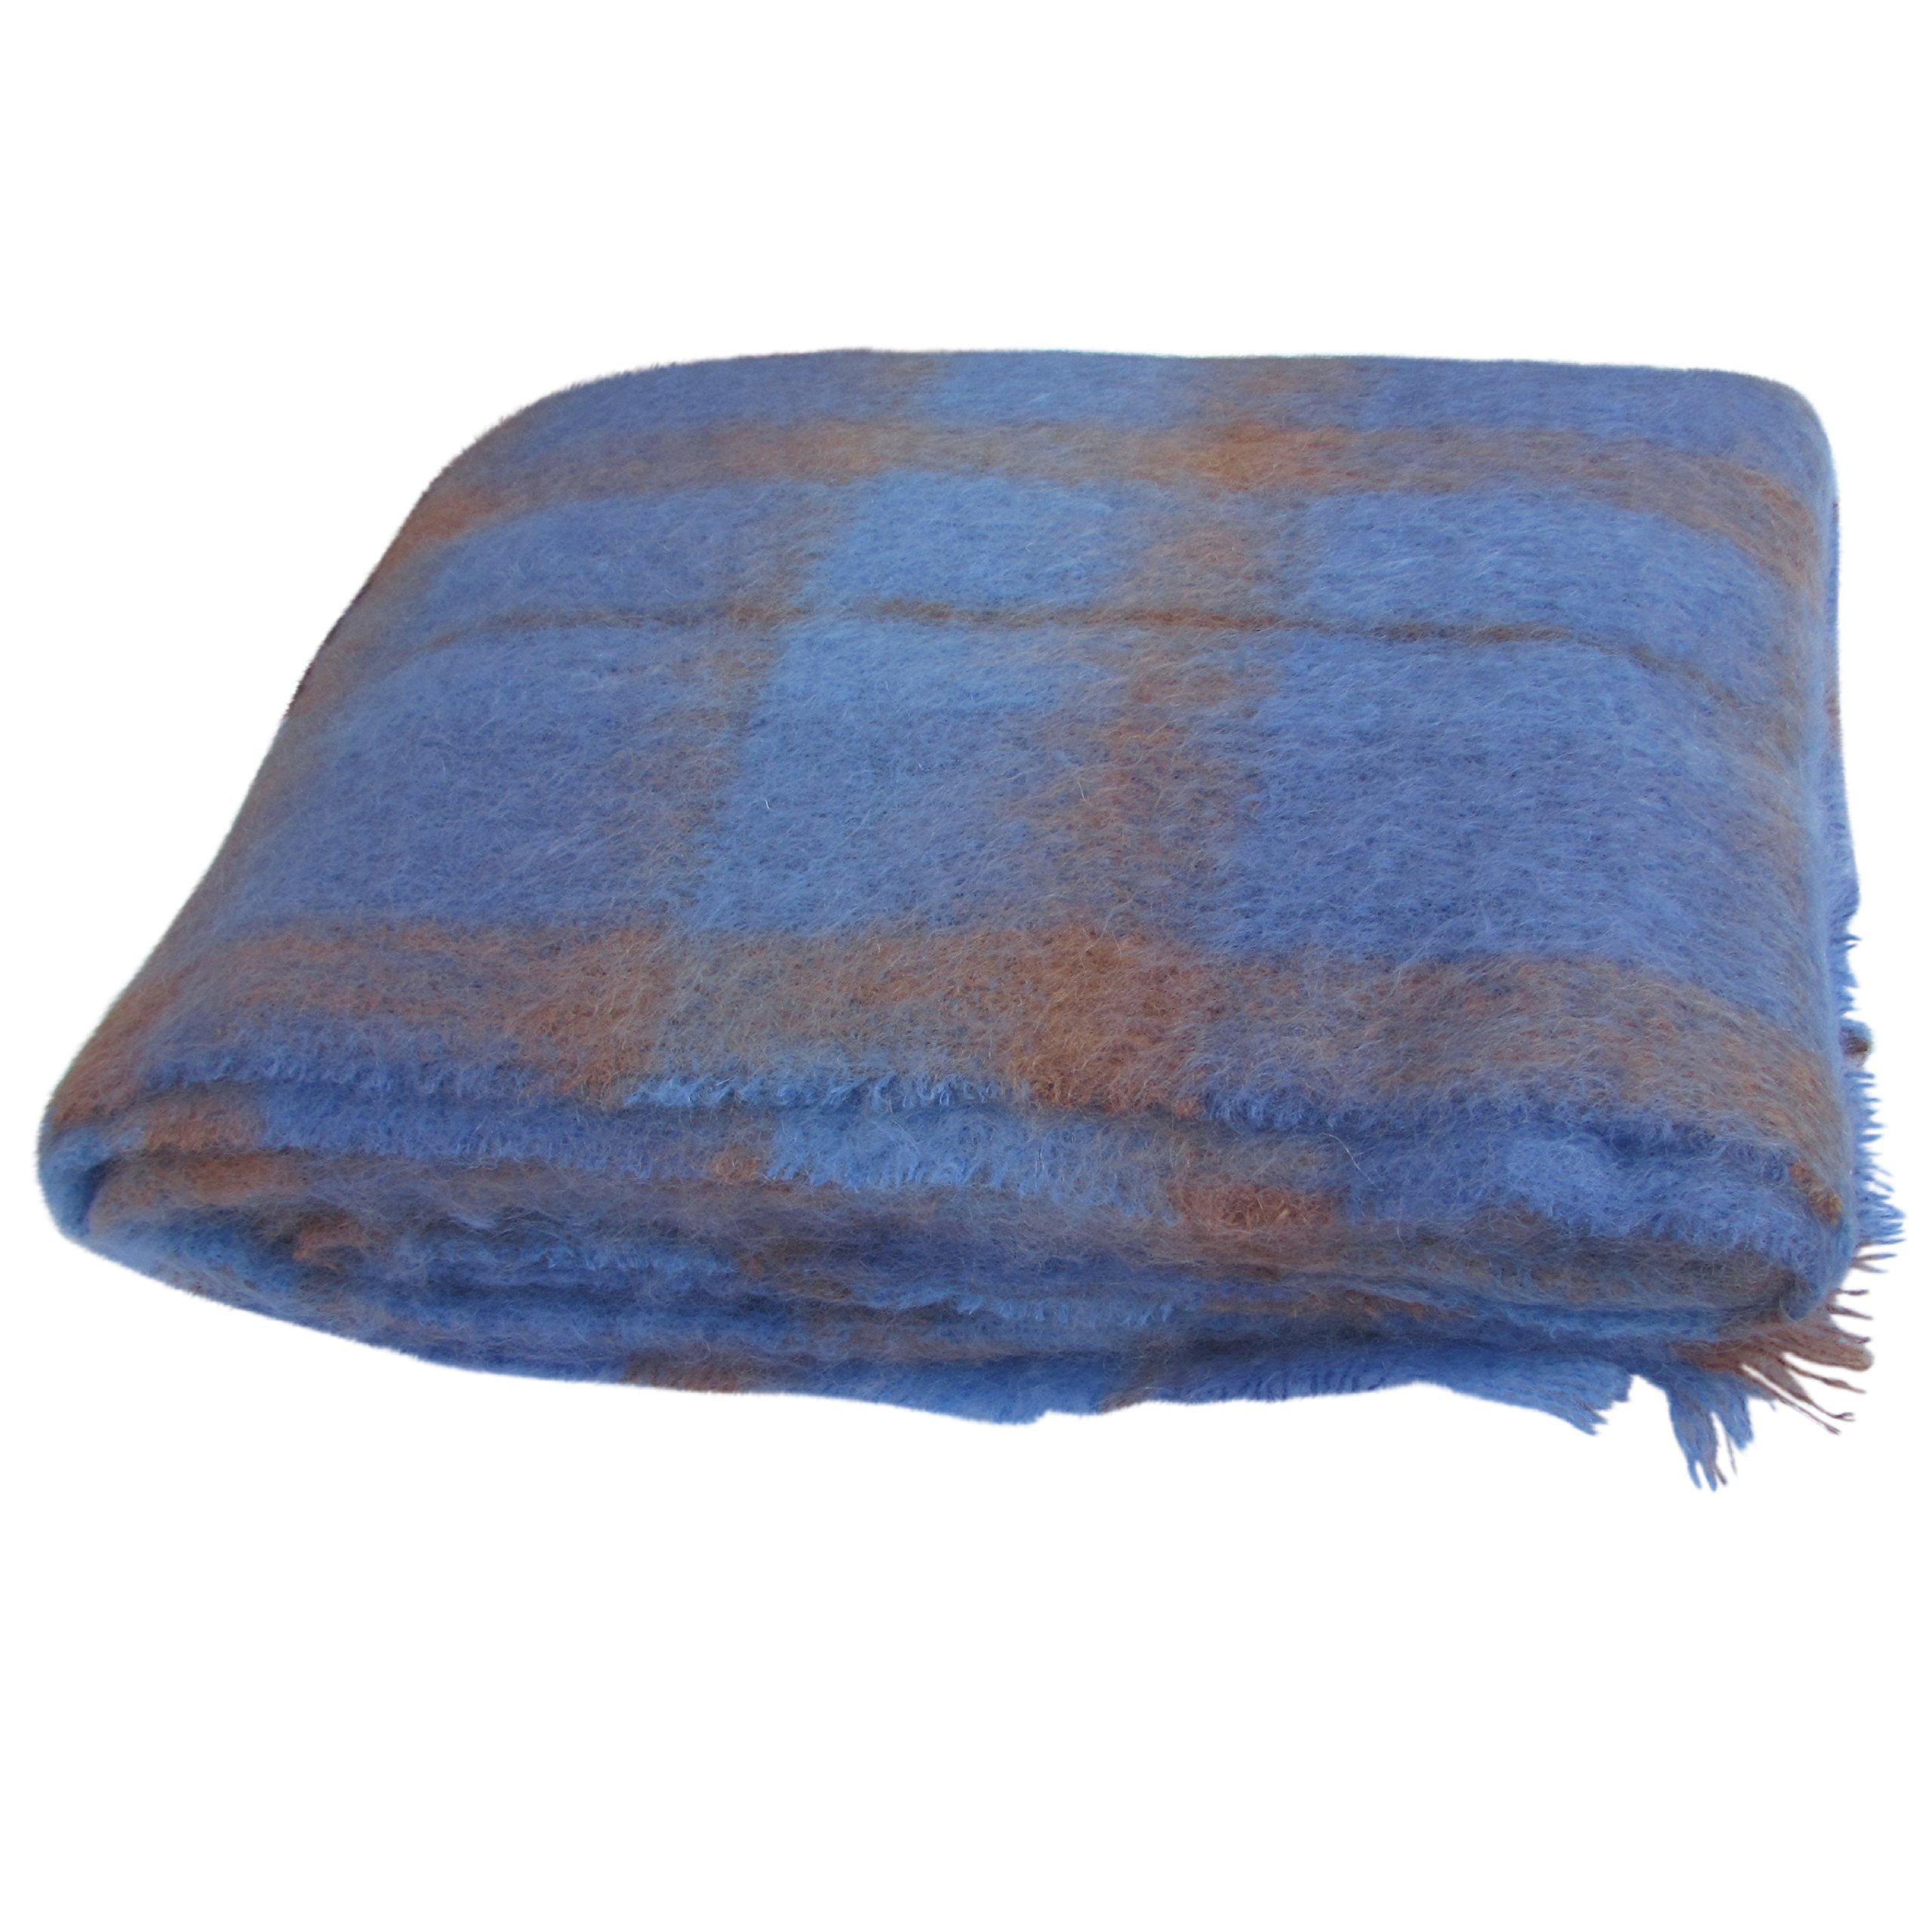 "Large Brushed Mohair Throw by Cushendale Woollen Mills Ireland. Super Soft Decorative Irish Wool Blanket 54""x 72"" (Blue mix)"